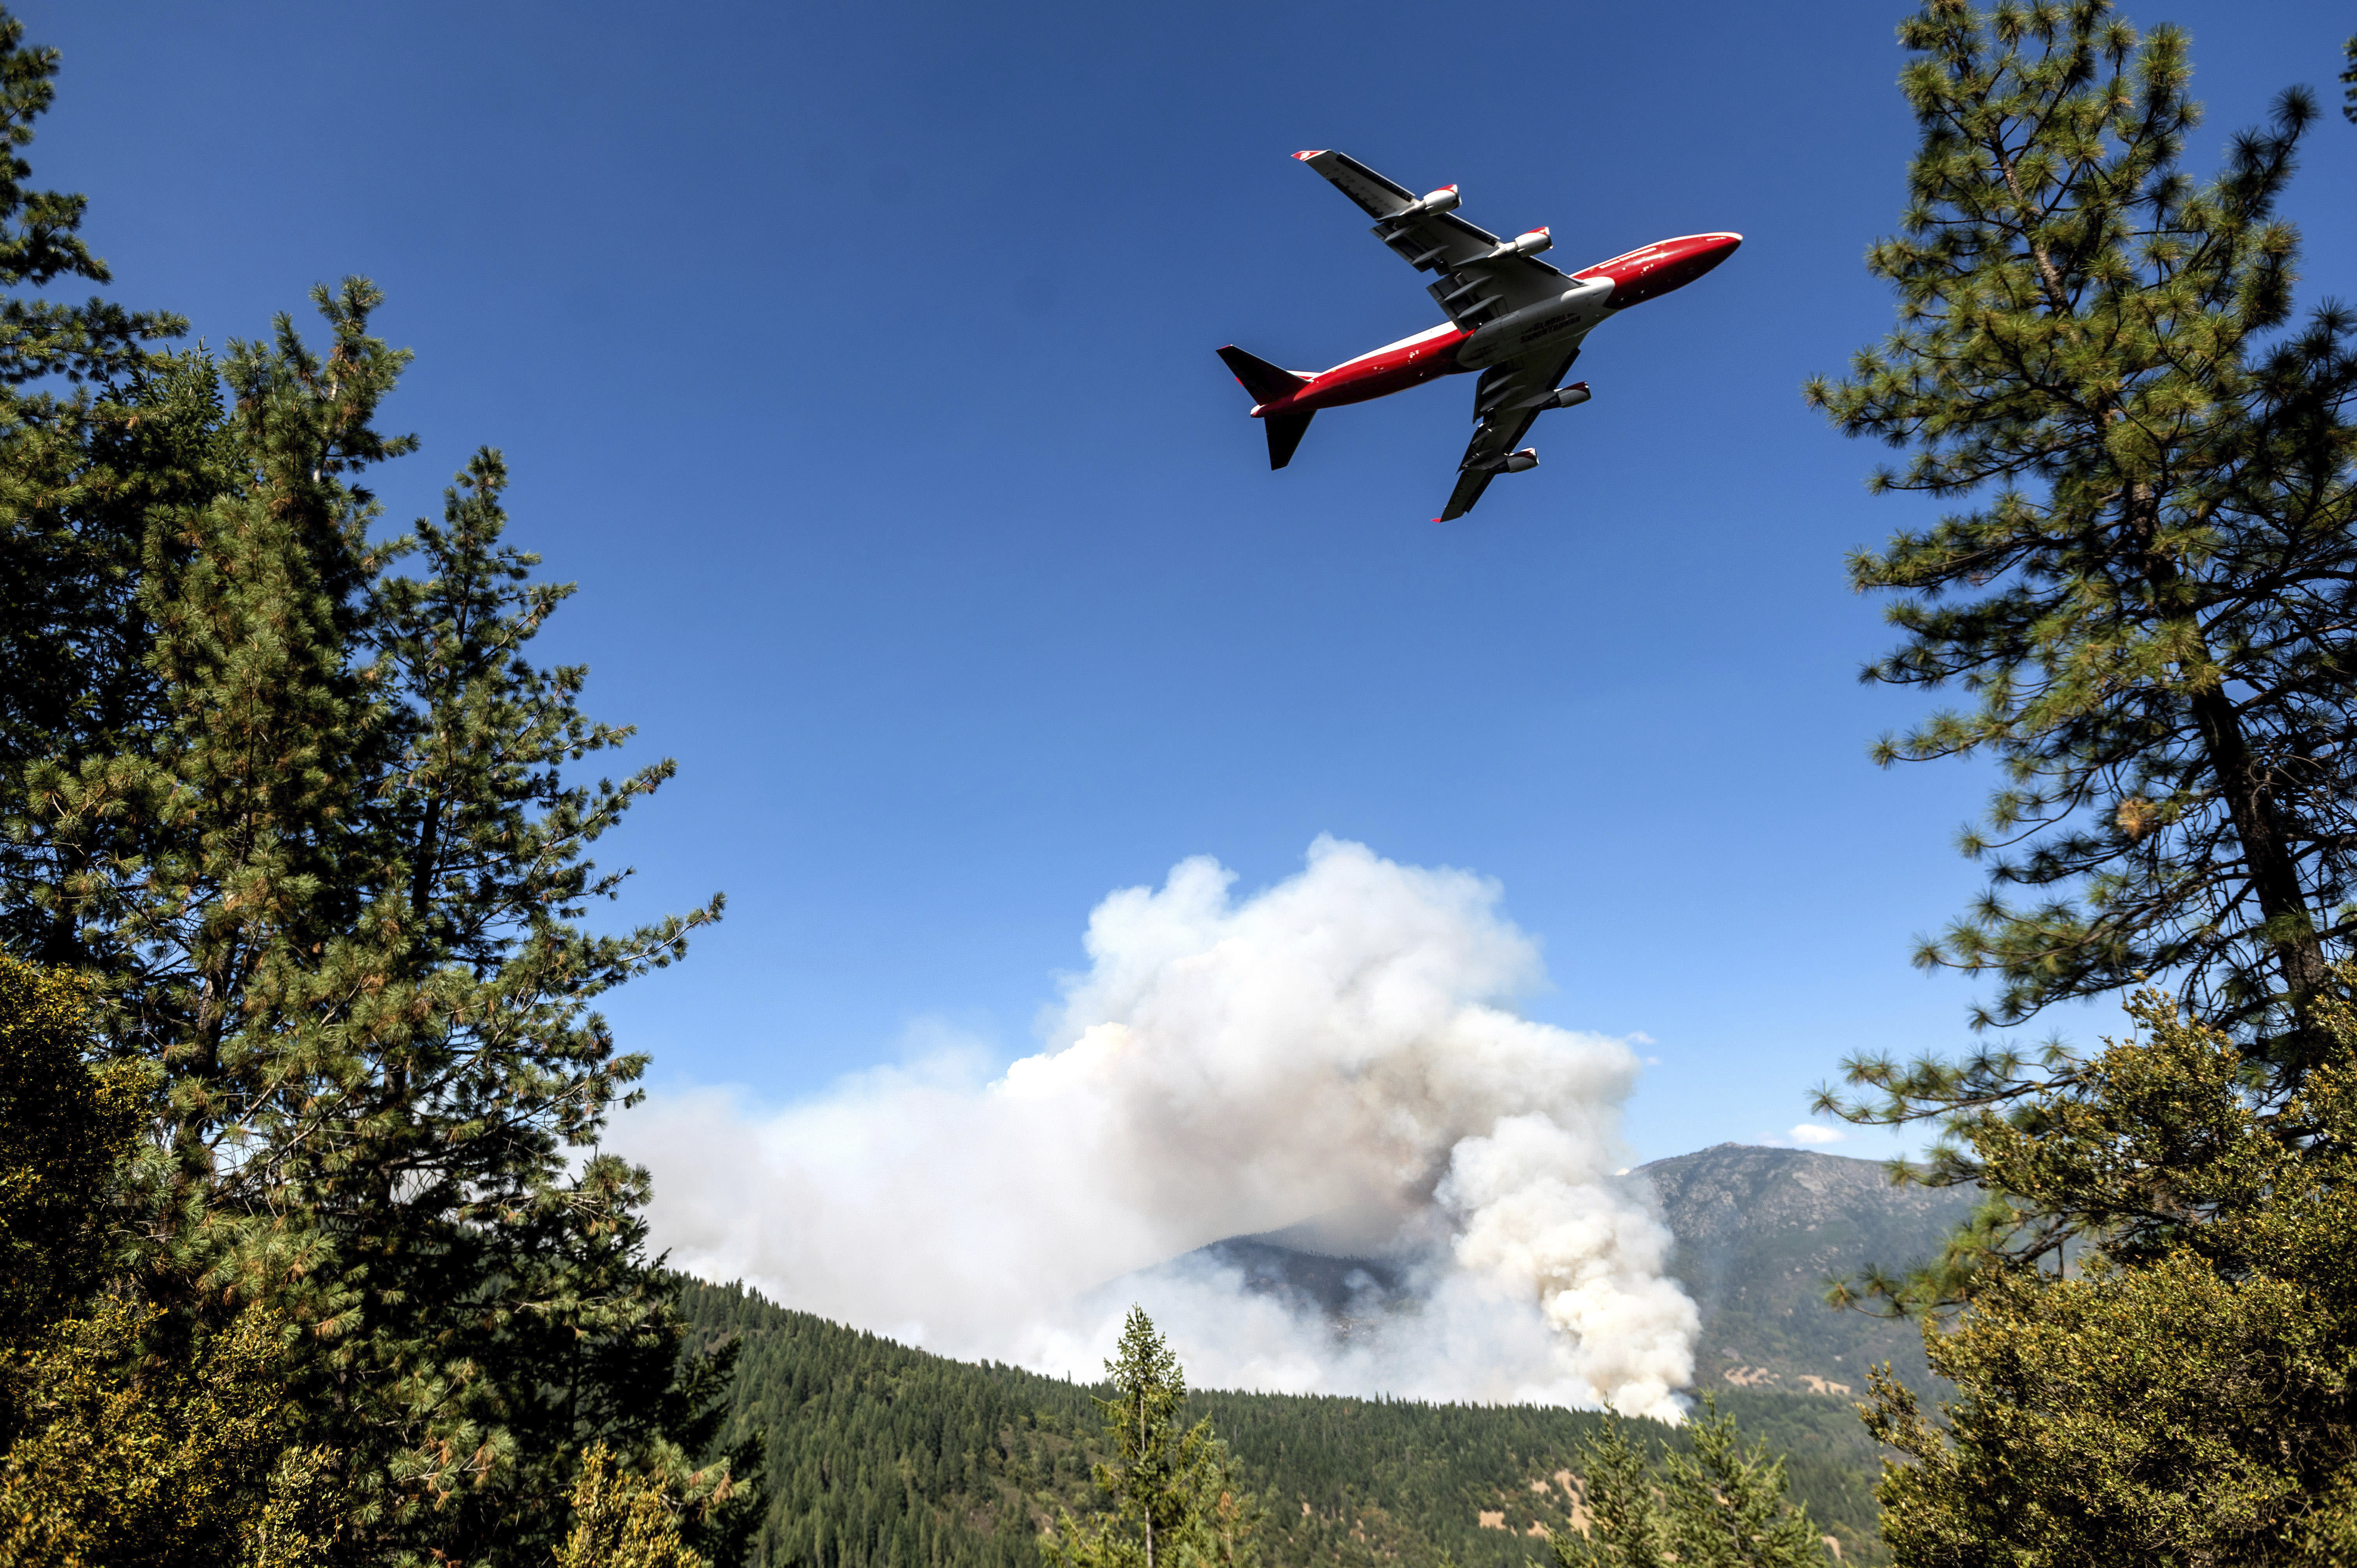 FILE - In this Sept. 17, 2020, file photo, an air tanker prepares to drop retardant while battling the August Complex Fire in the Mendocino National Forest, Calif. Rain showers fell Thursday, Sept. 24, 2020, on the northwestern edges of fire-ravaged California but forecasters warned residents to not be fooled: a new round of hot, dry and windy weather is expected by the weekend. (AP Photo/Noah Berger, File)